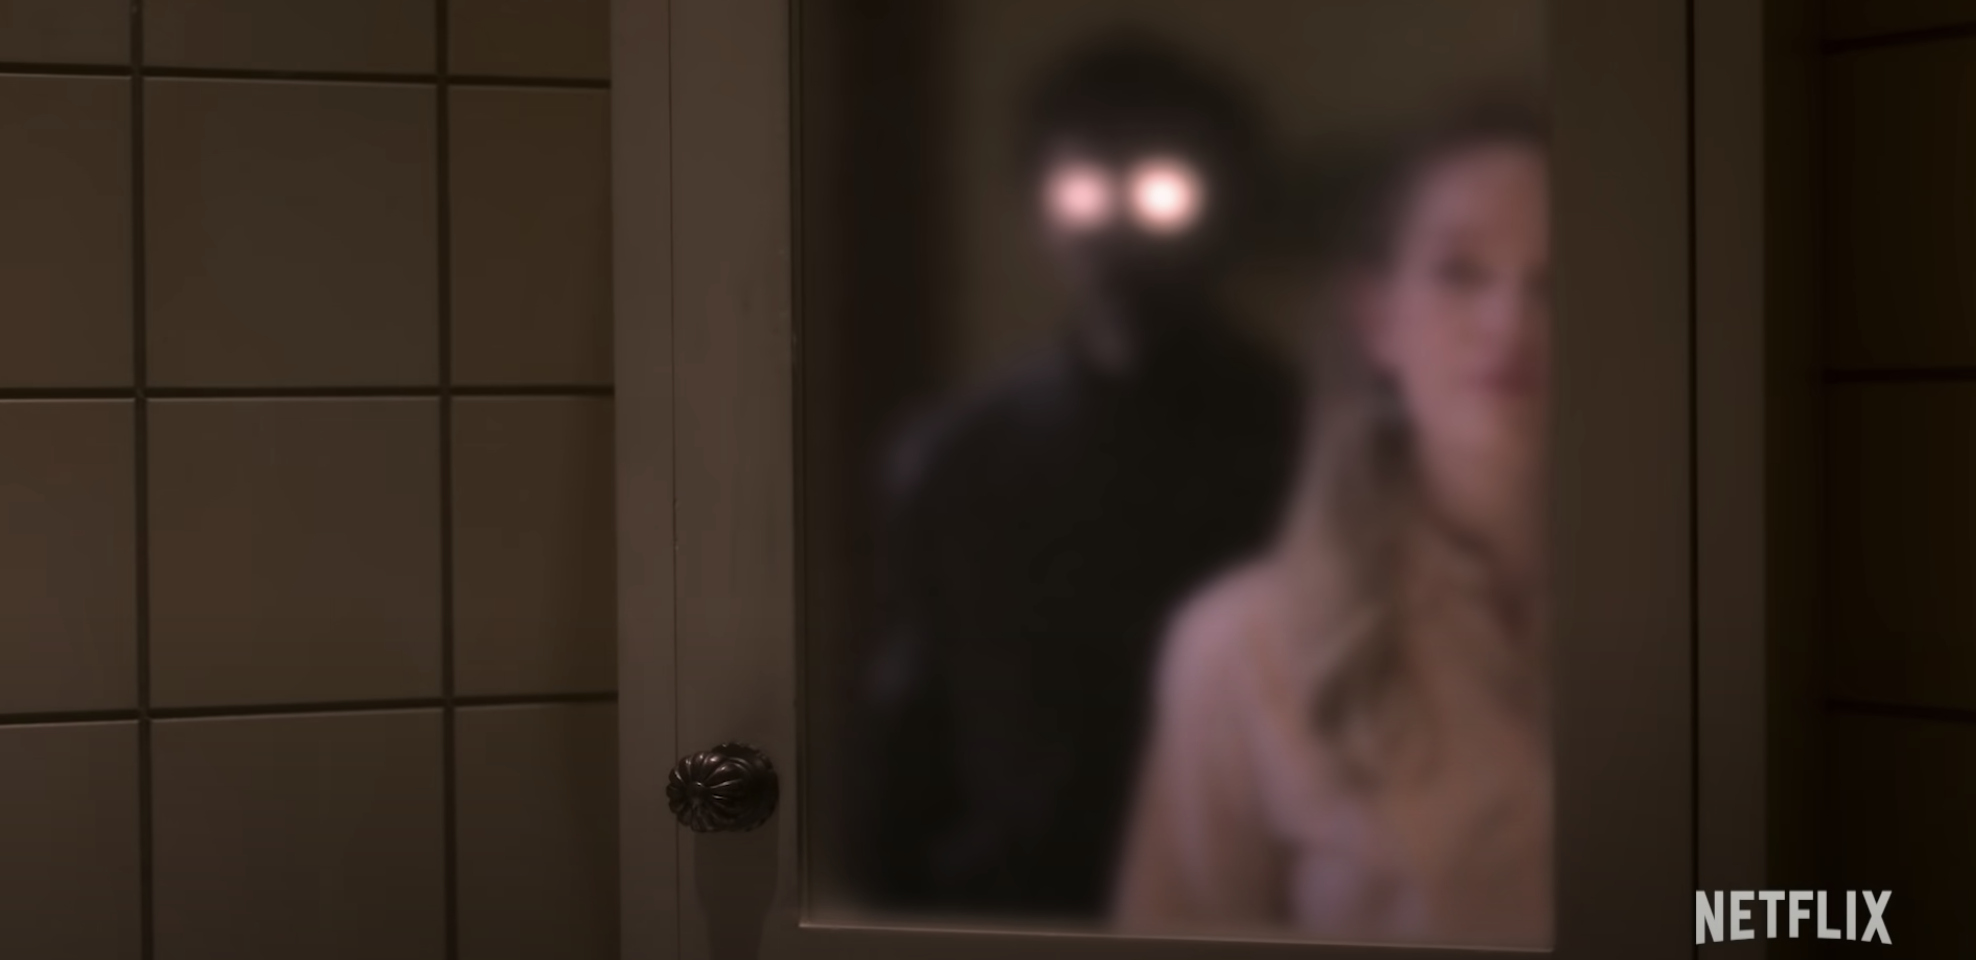 Dani looking in the mirror and seeing a ghost behind her